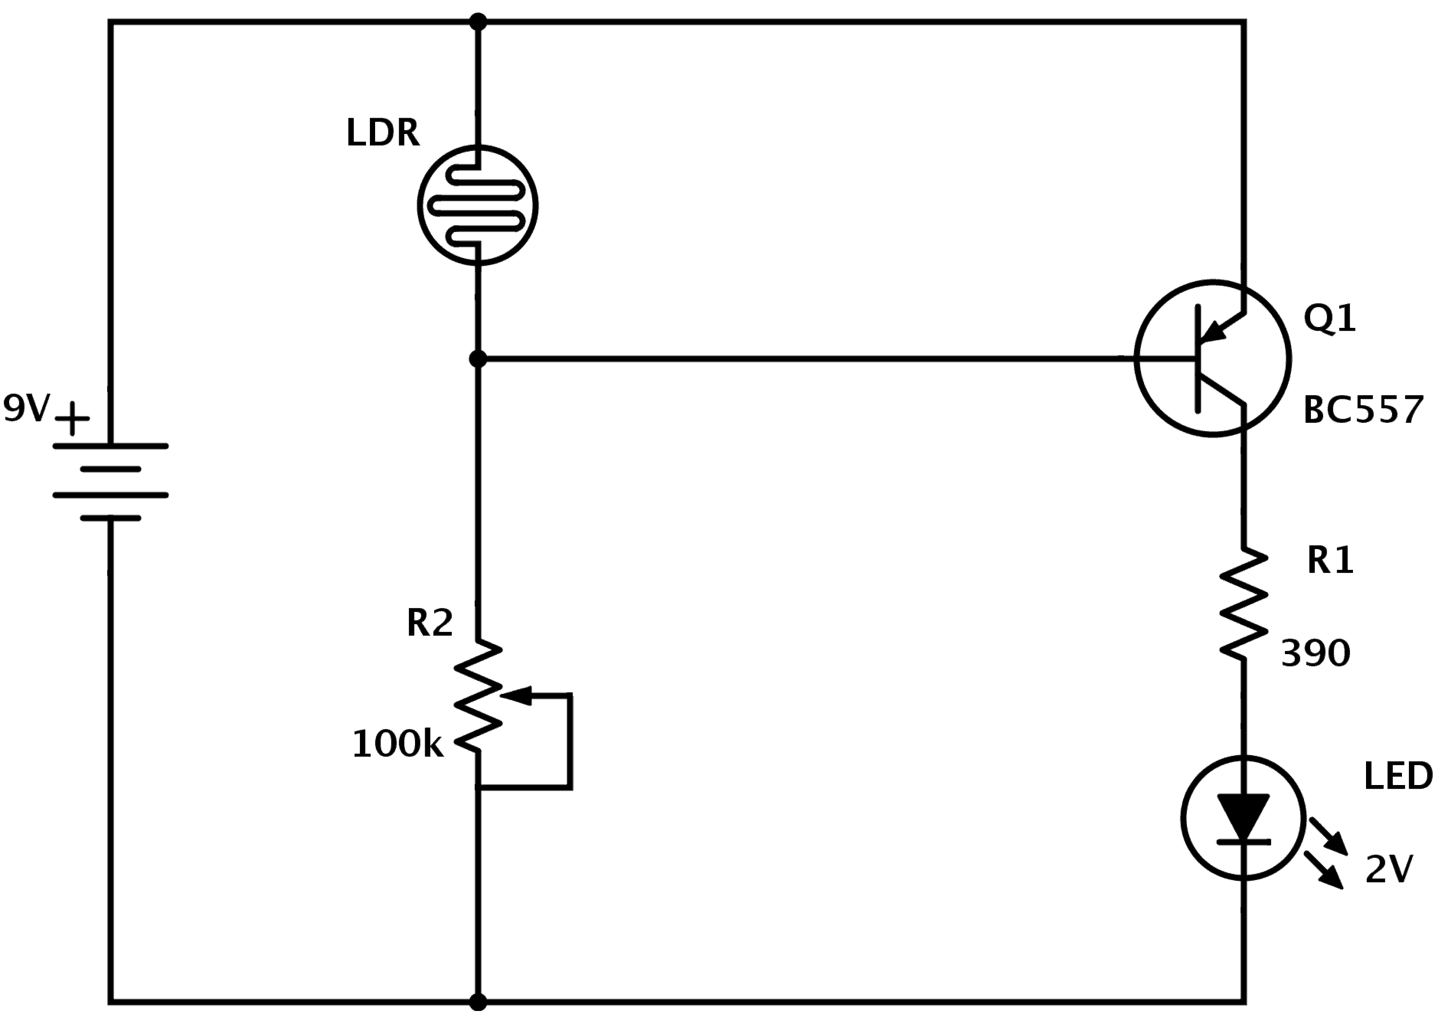 Ldr Circuit Diagram Build Electronic Circuits Mosfet Tester With Pnp Transistor Dark Detector